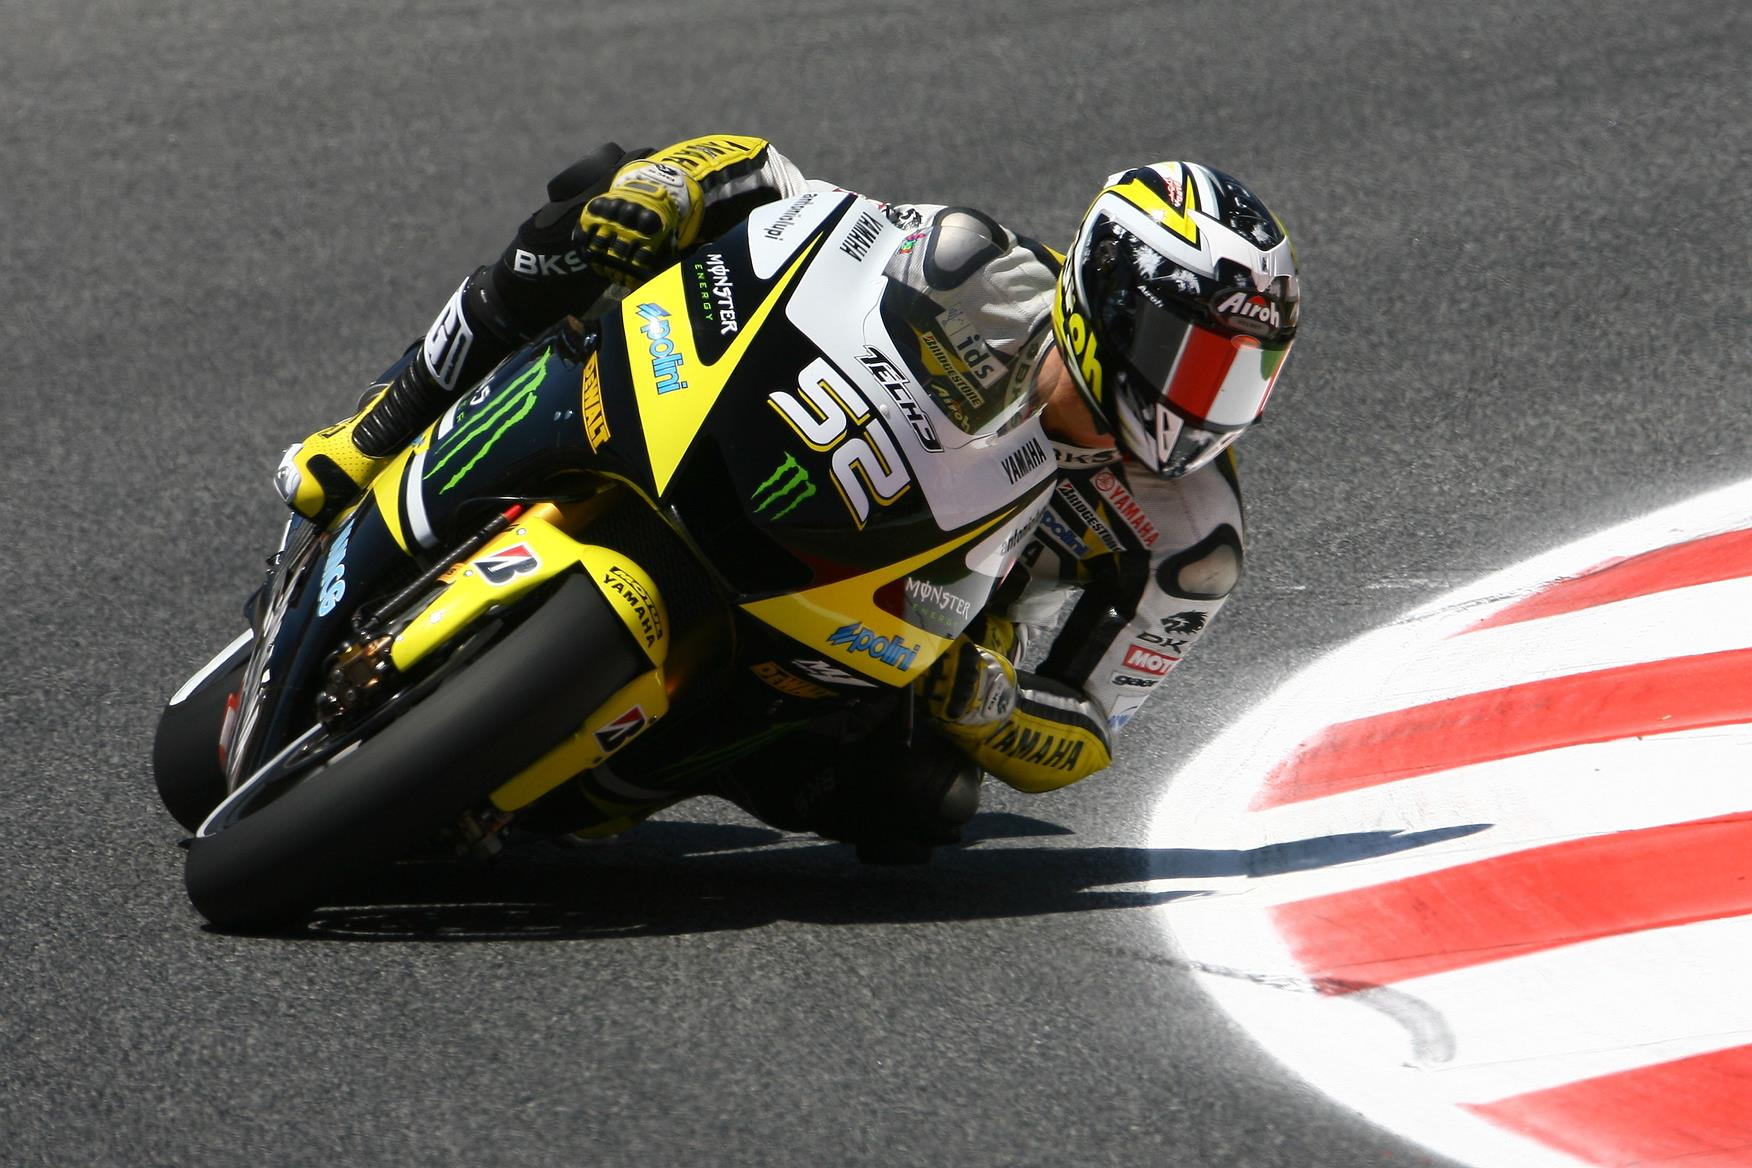 Catalunya MotoGP: Season best qualifying for James Toseland | MCN